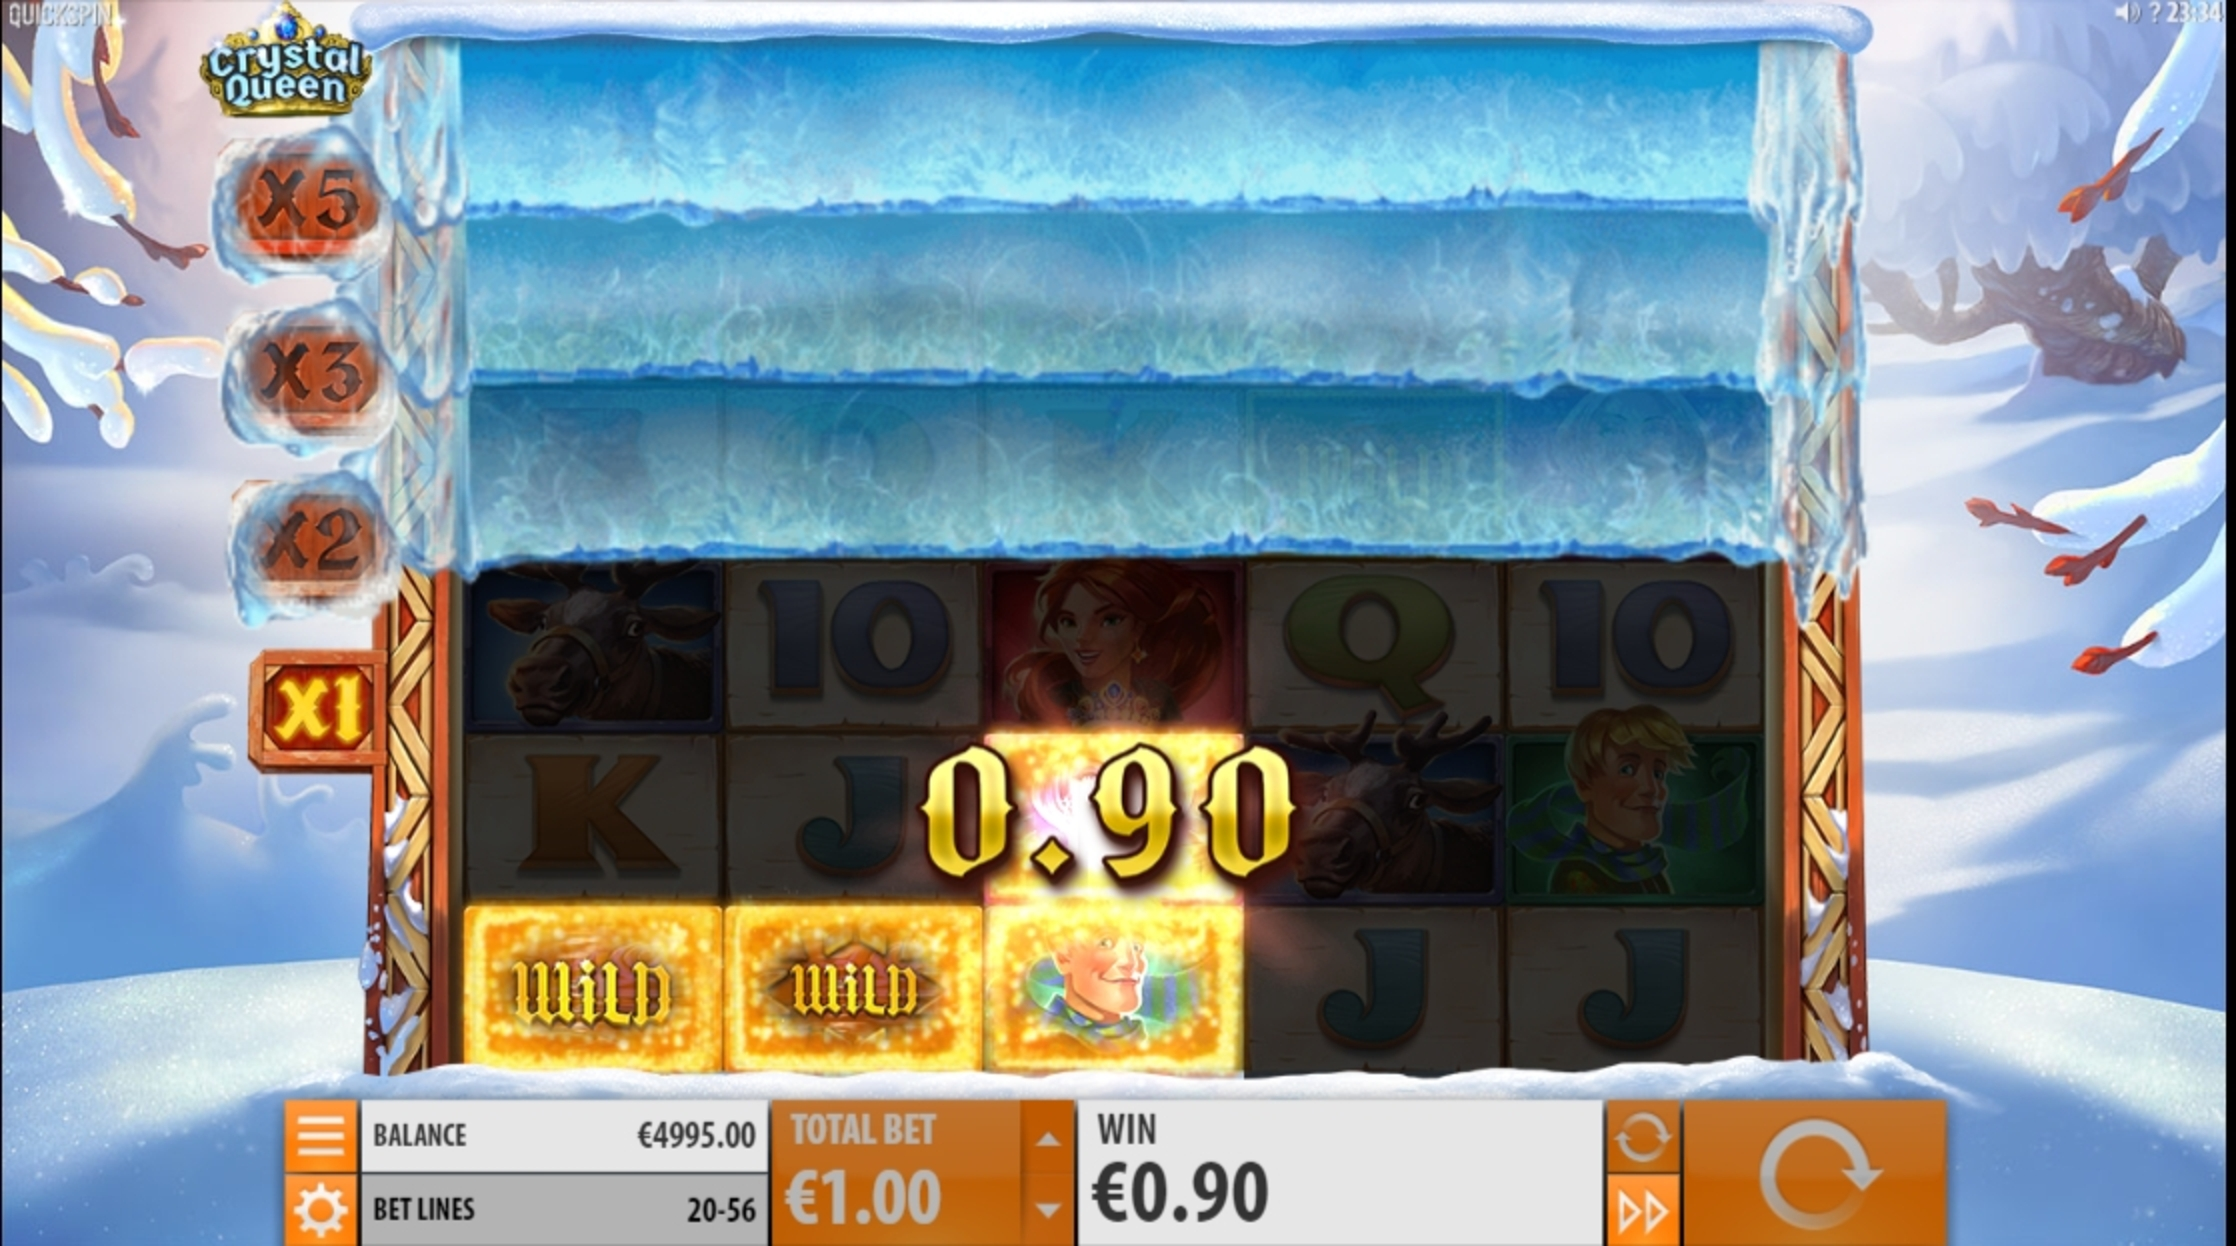 Win Money in Crystal Queen Free Slot Game by Quickspin